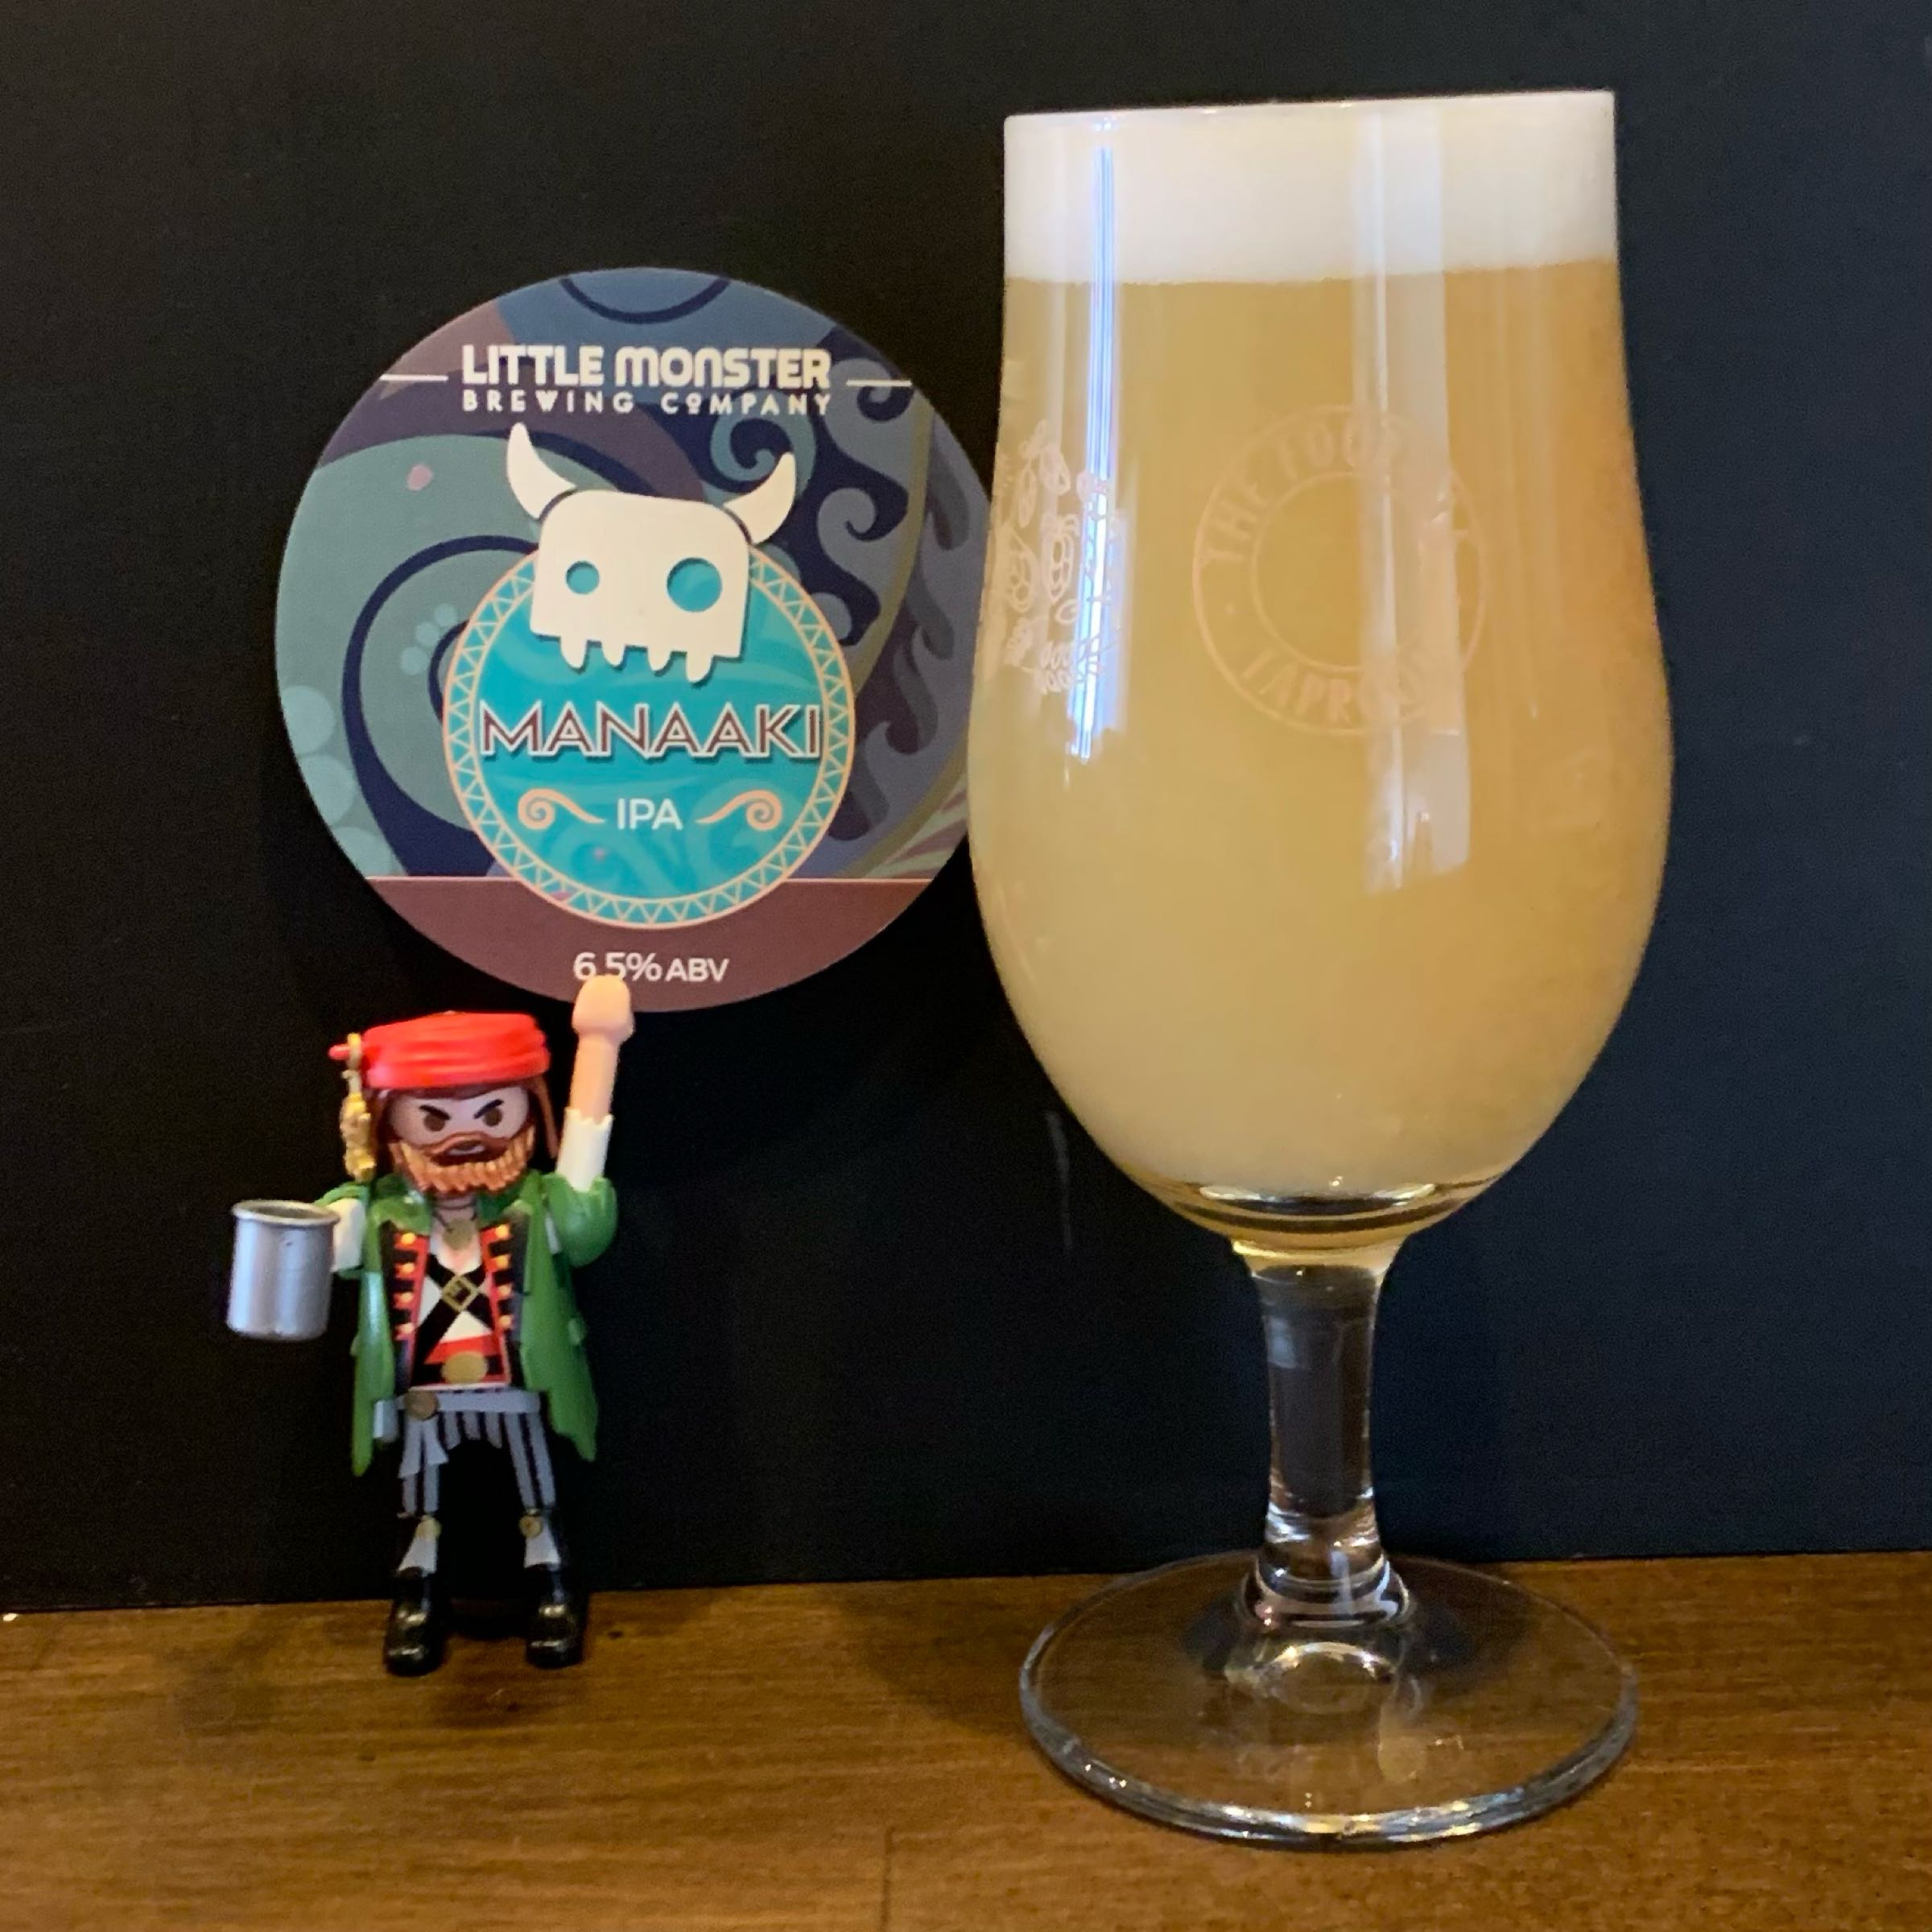 Tap 05 - Craft Keg - Little Monster - Manaaki - IPA - 6.5% (2 Crowlers)